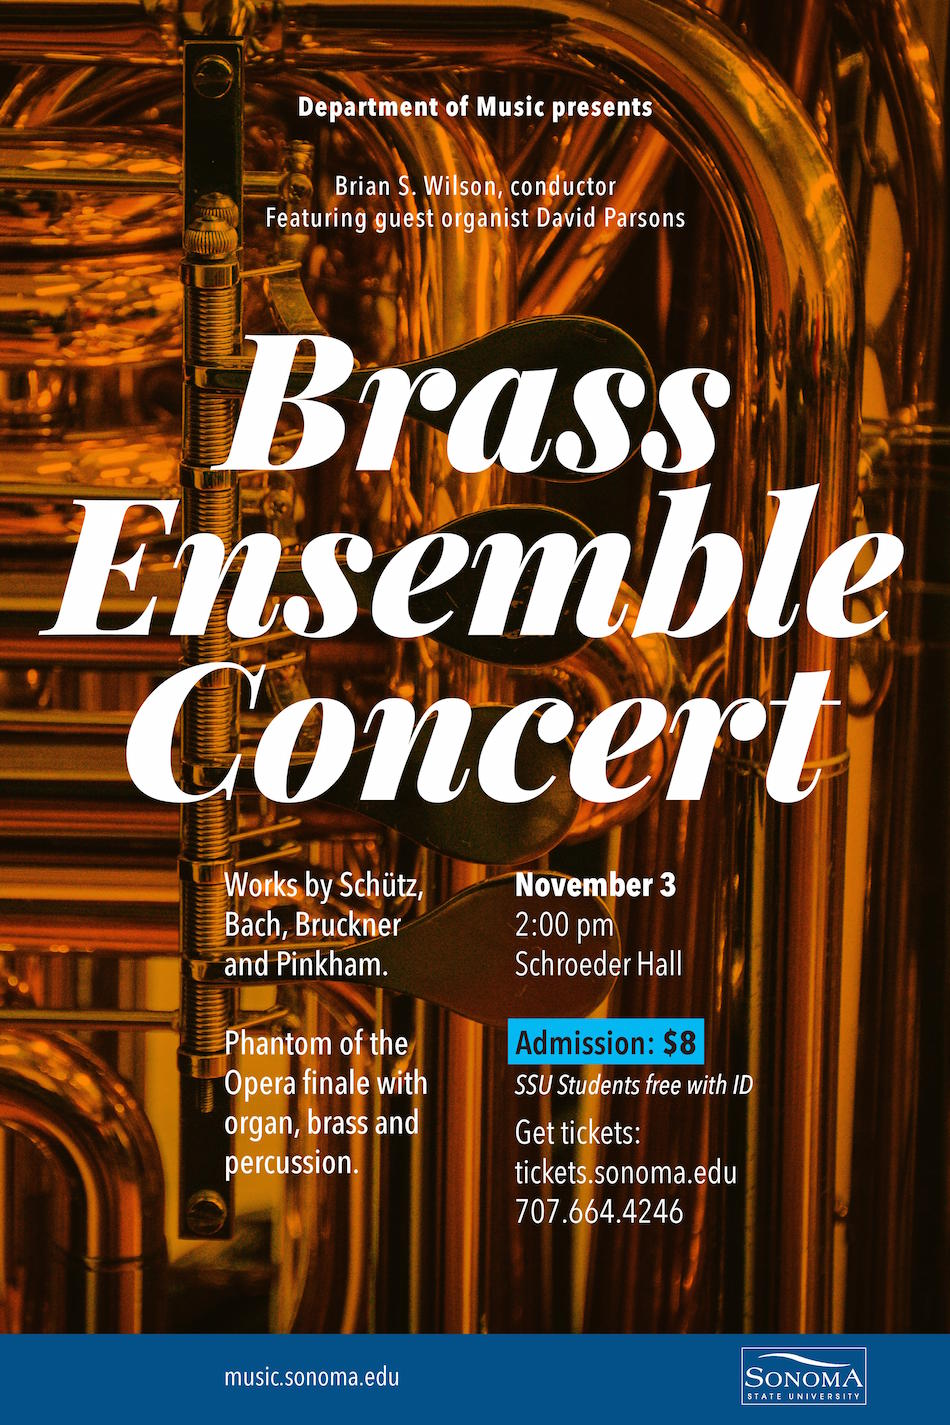 Department of Music concert poster